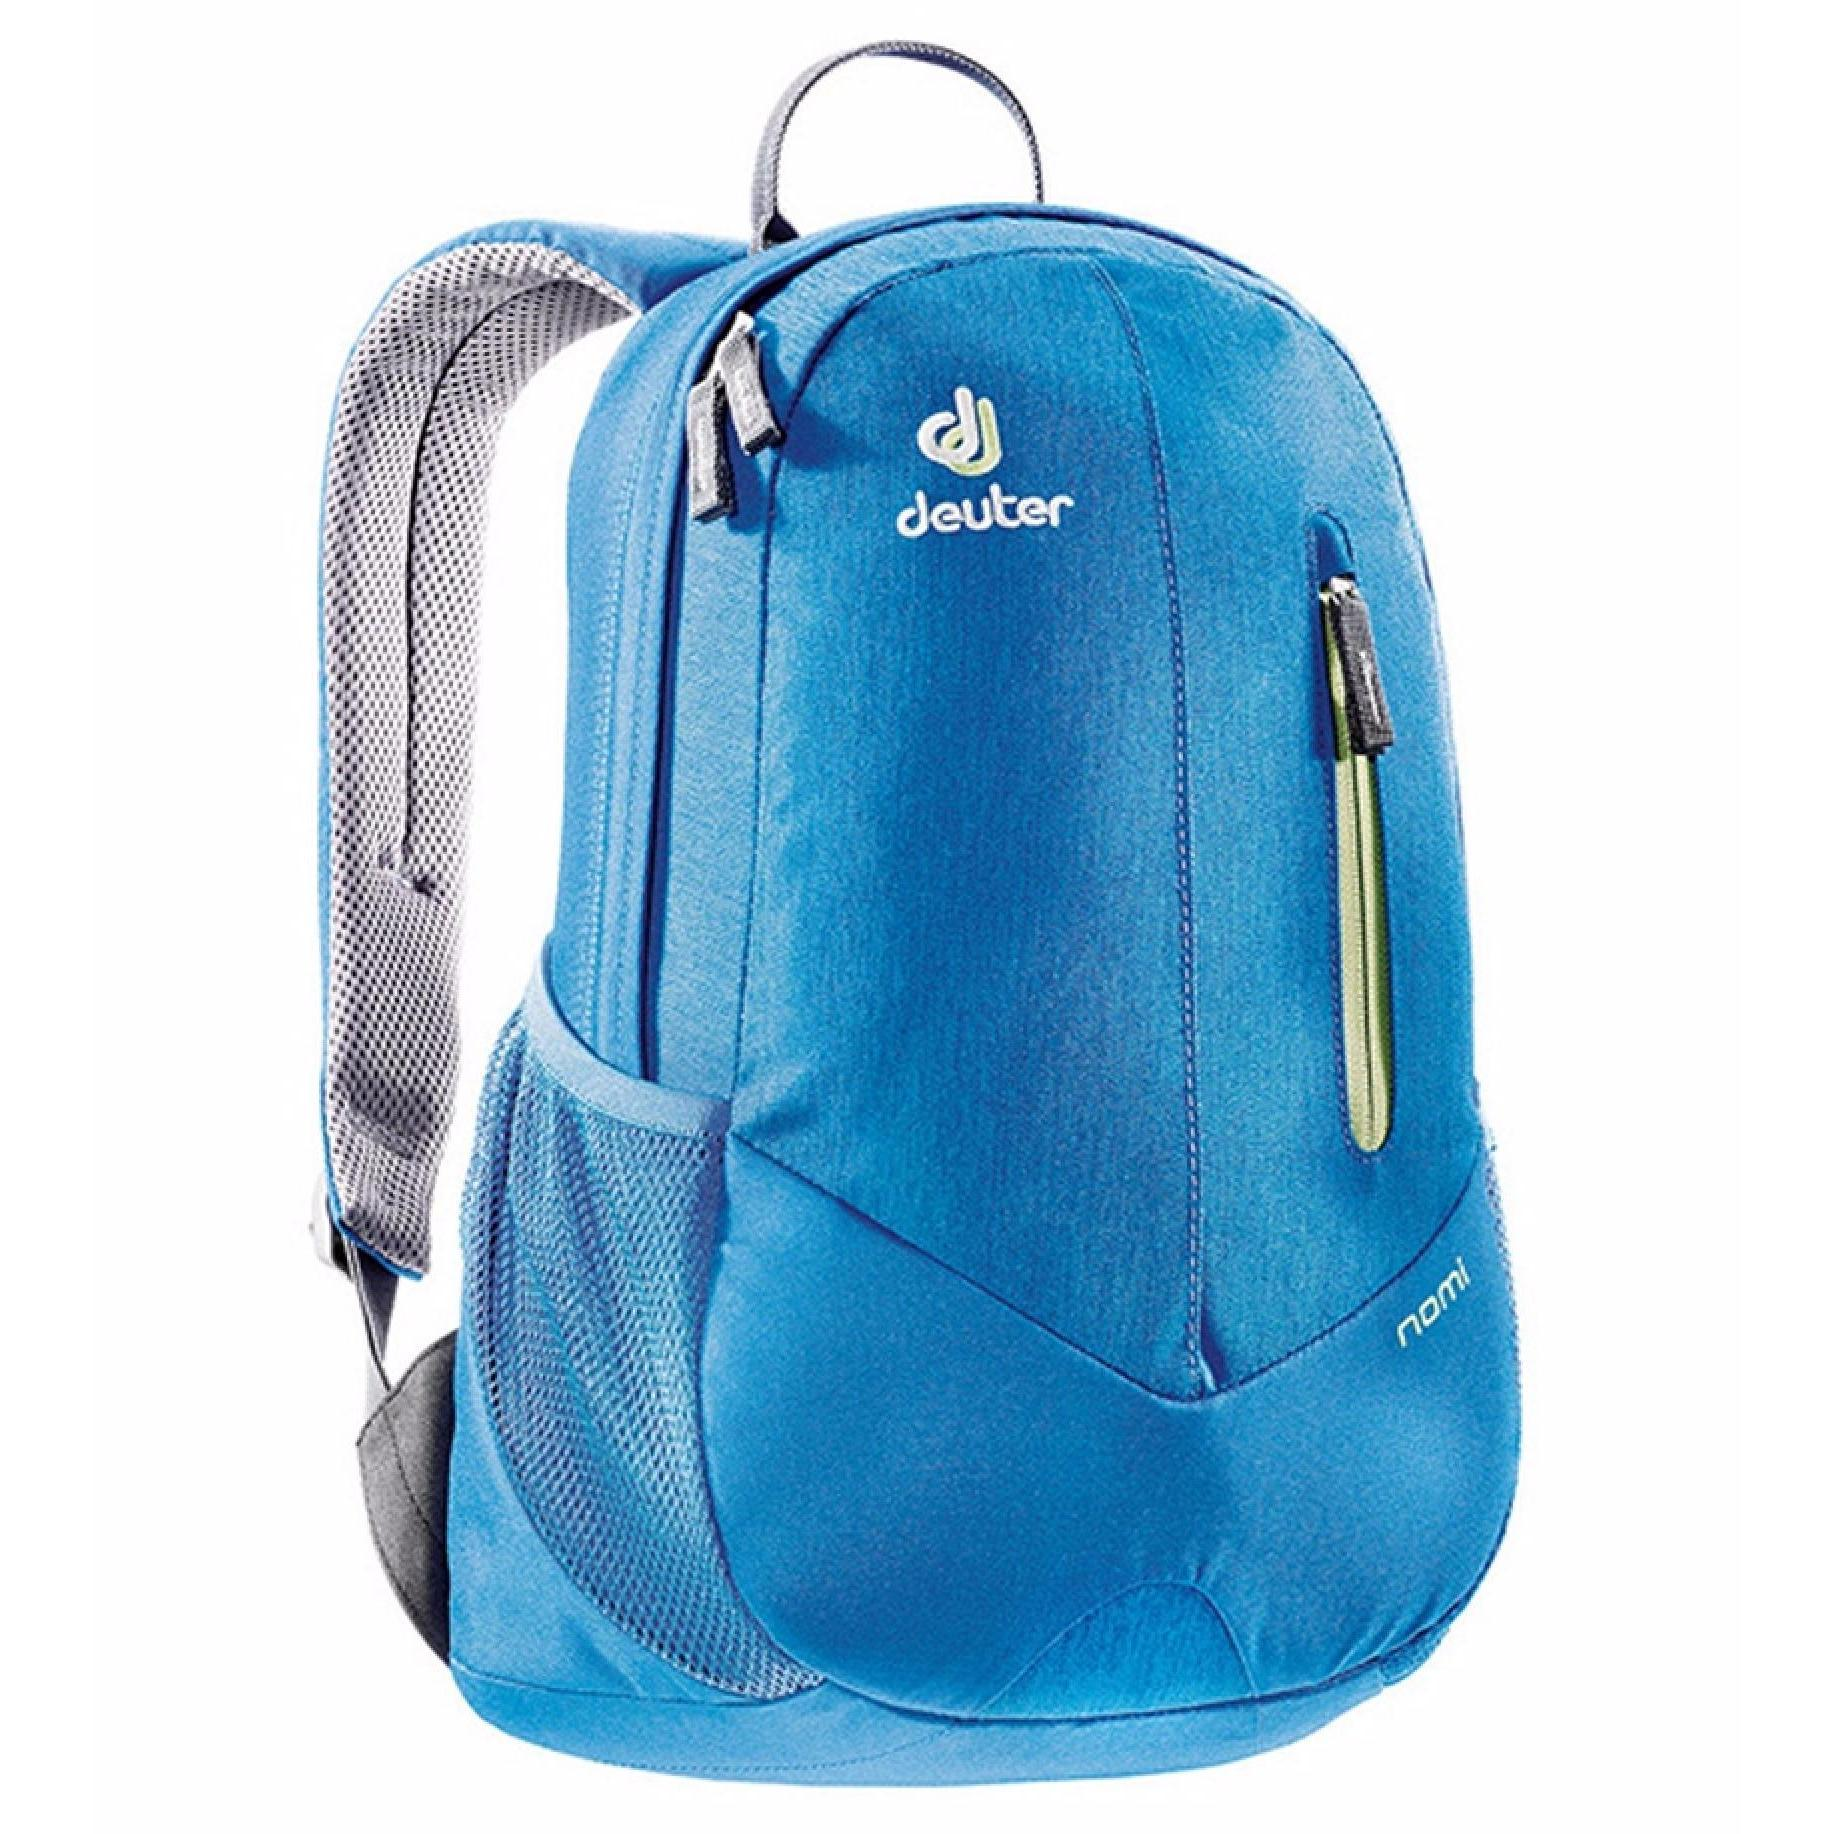 Рюкзак Deuter 2015 Daypacks Nomi Bay Dresscode от КАНТ